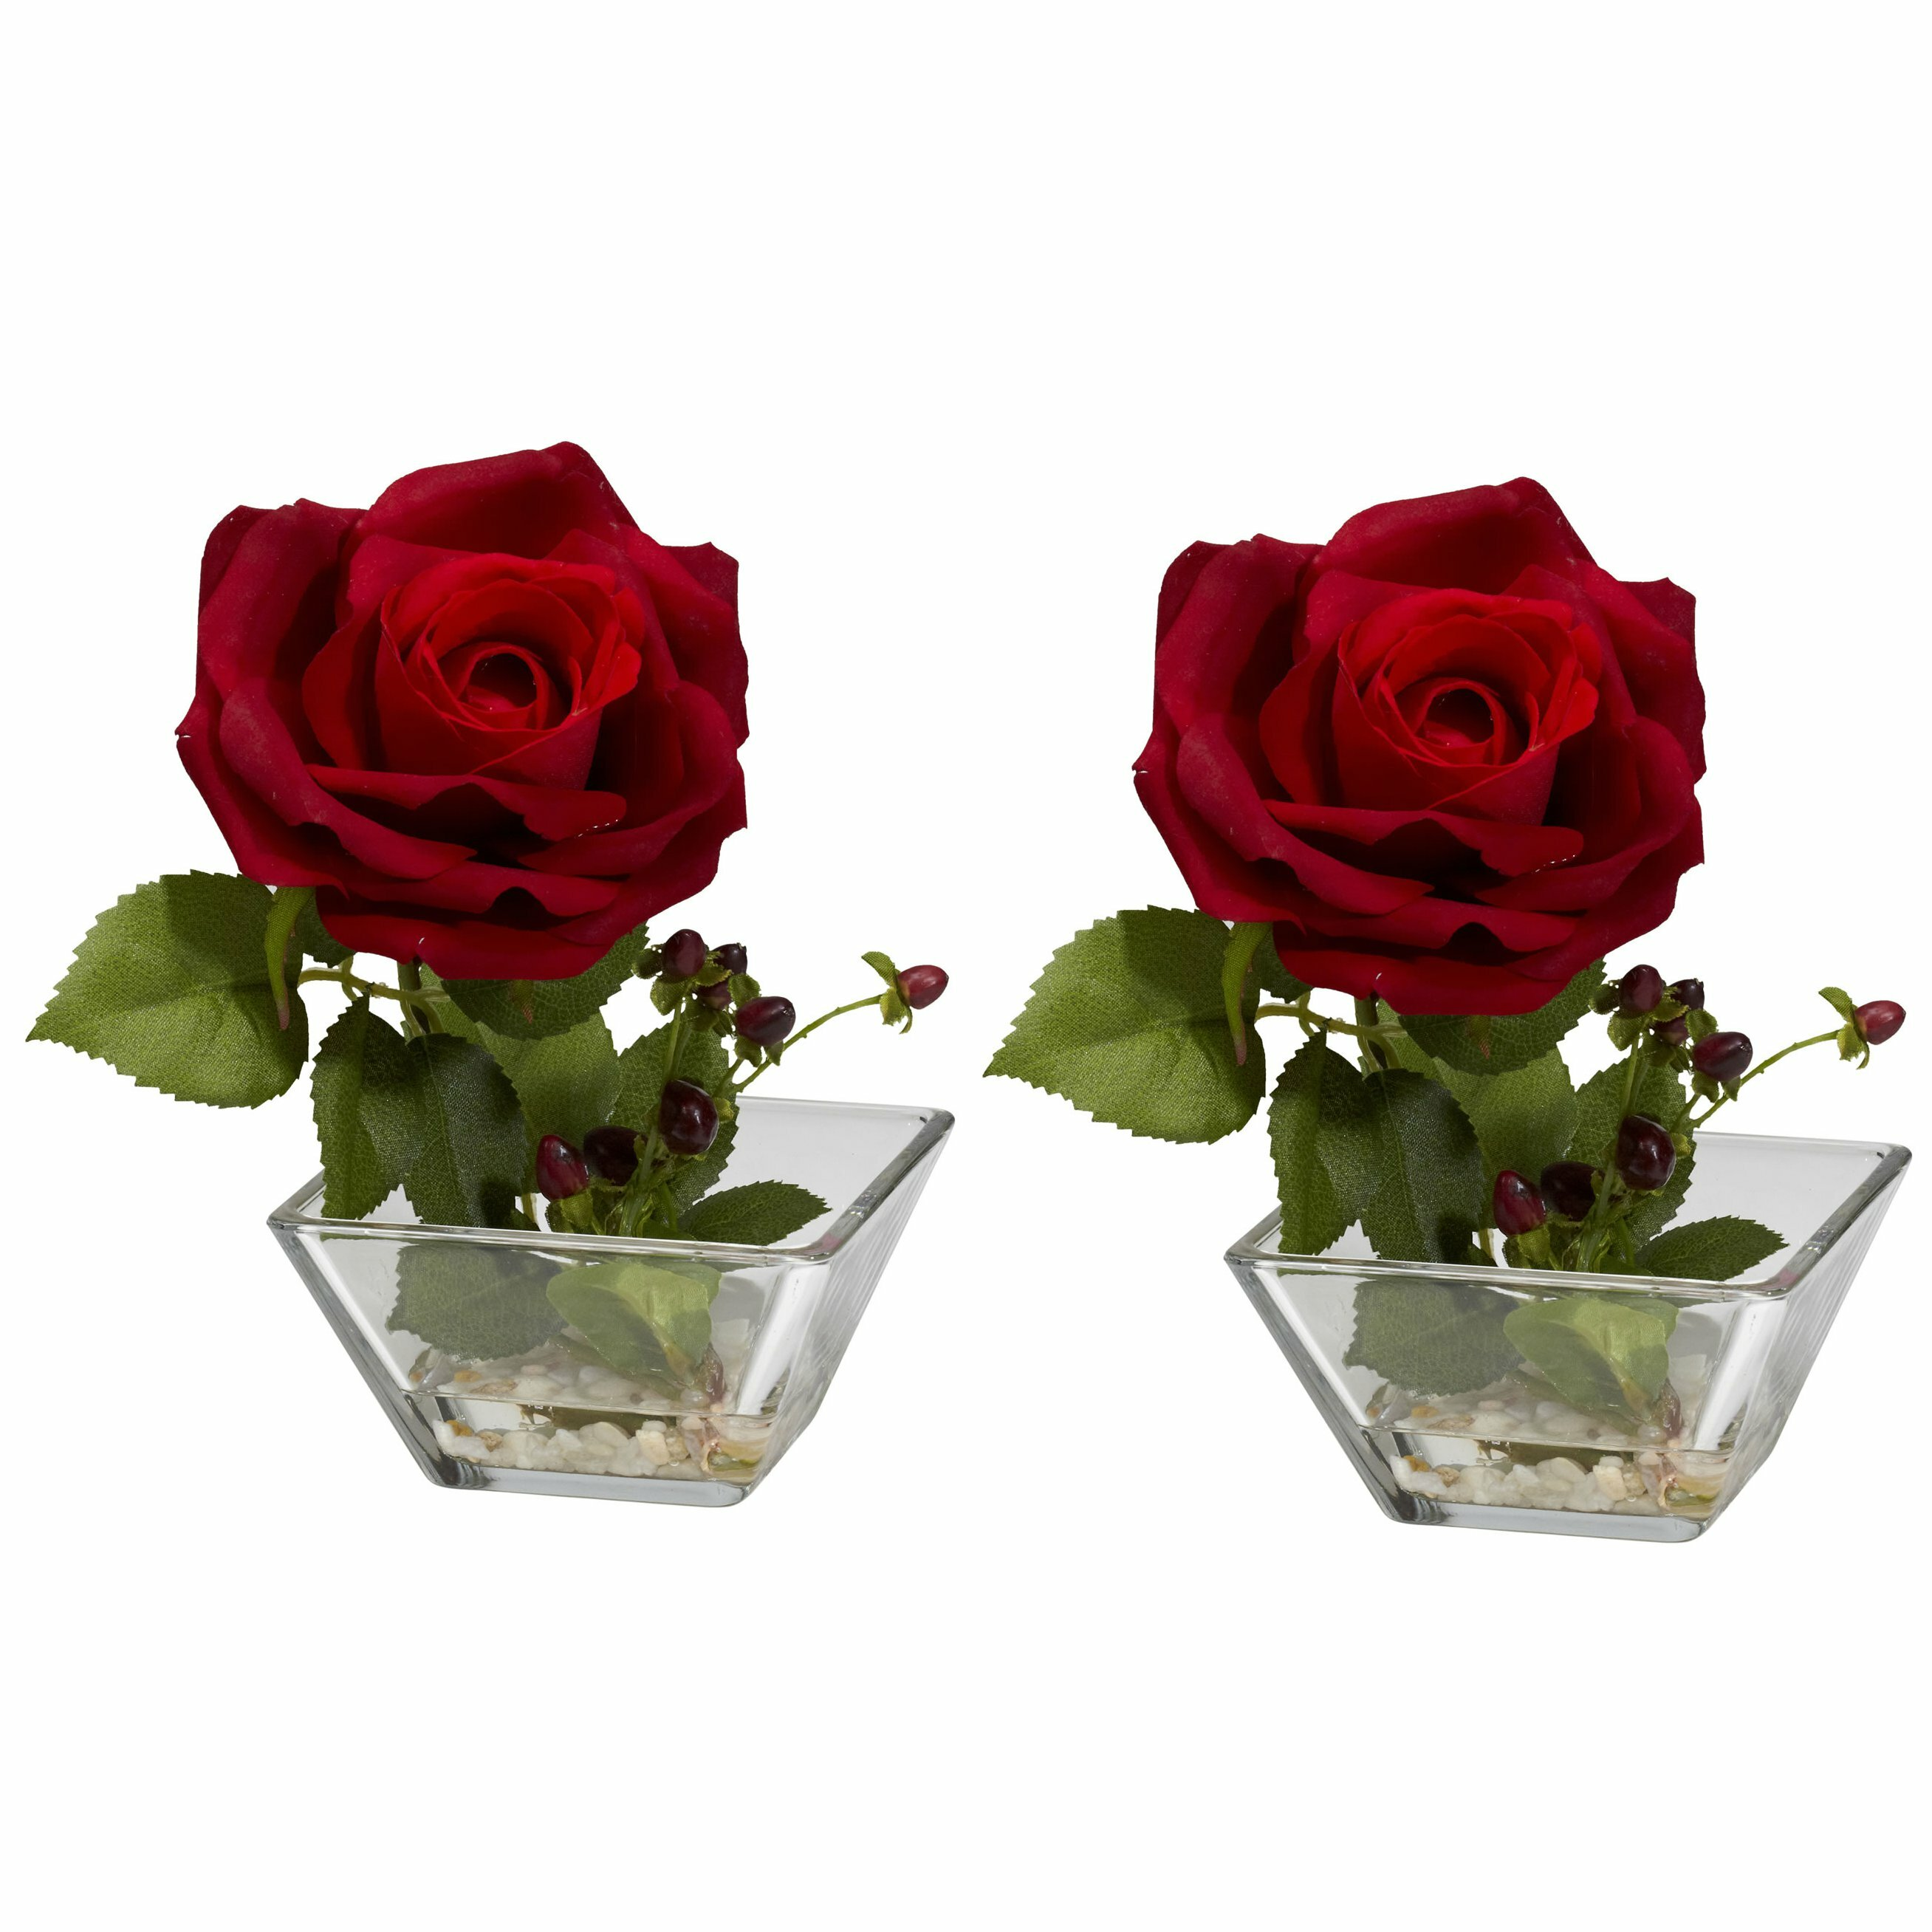 Silk flowers in square vase flowers healthy nearly natural rose with square vase silk flower reviews wayfair mightylinksfo